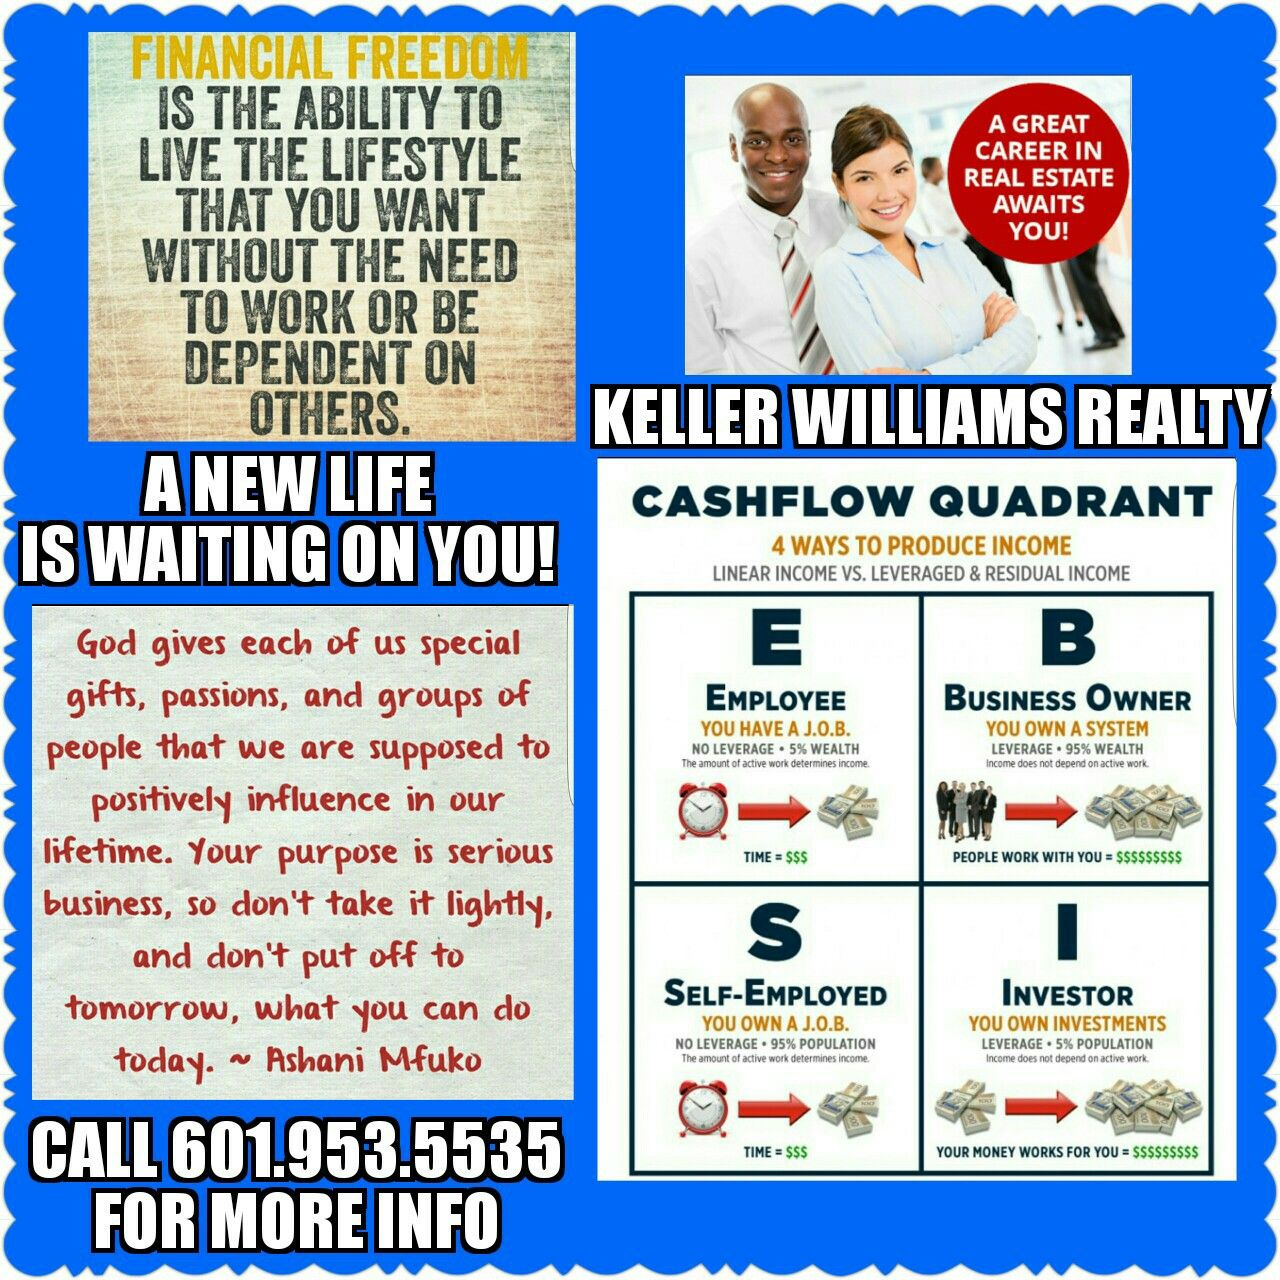 Pin By Felicia A Durham Realtor On Real Estate Passion Cashflow Quadrant Financial Freedom Keller Williams Realty